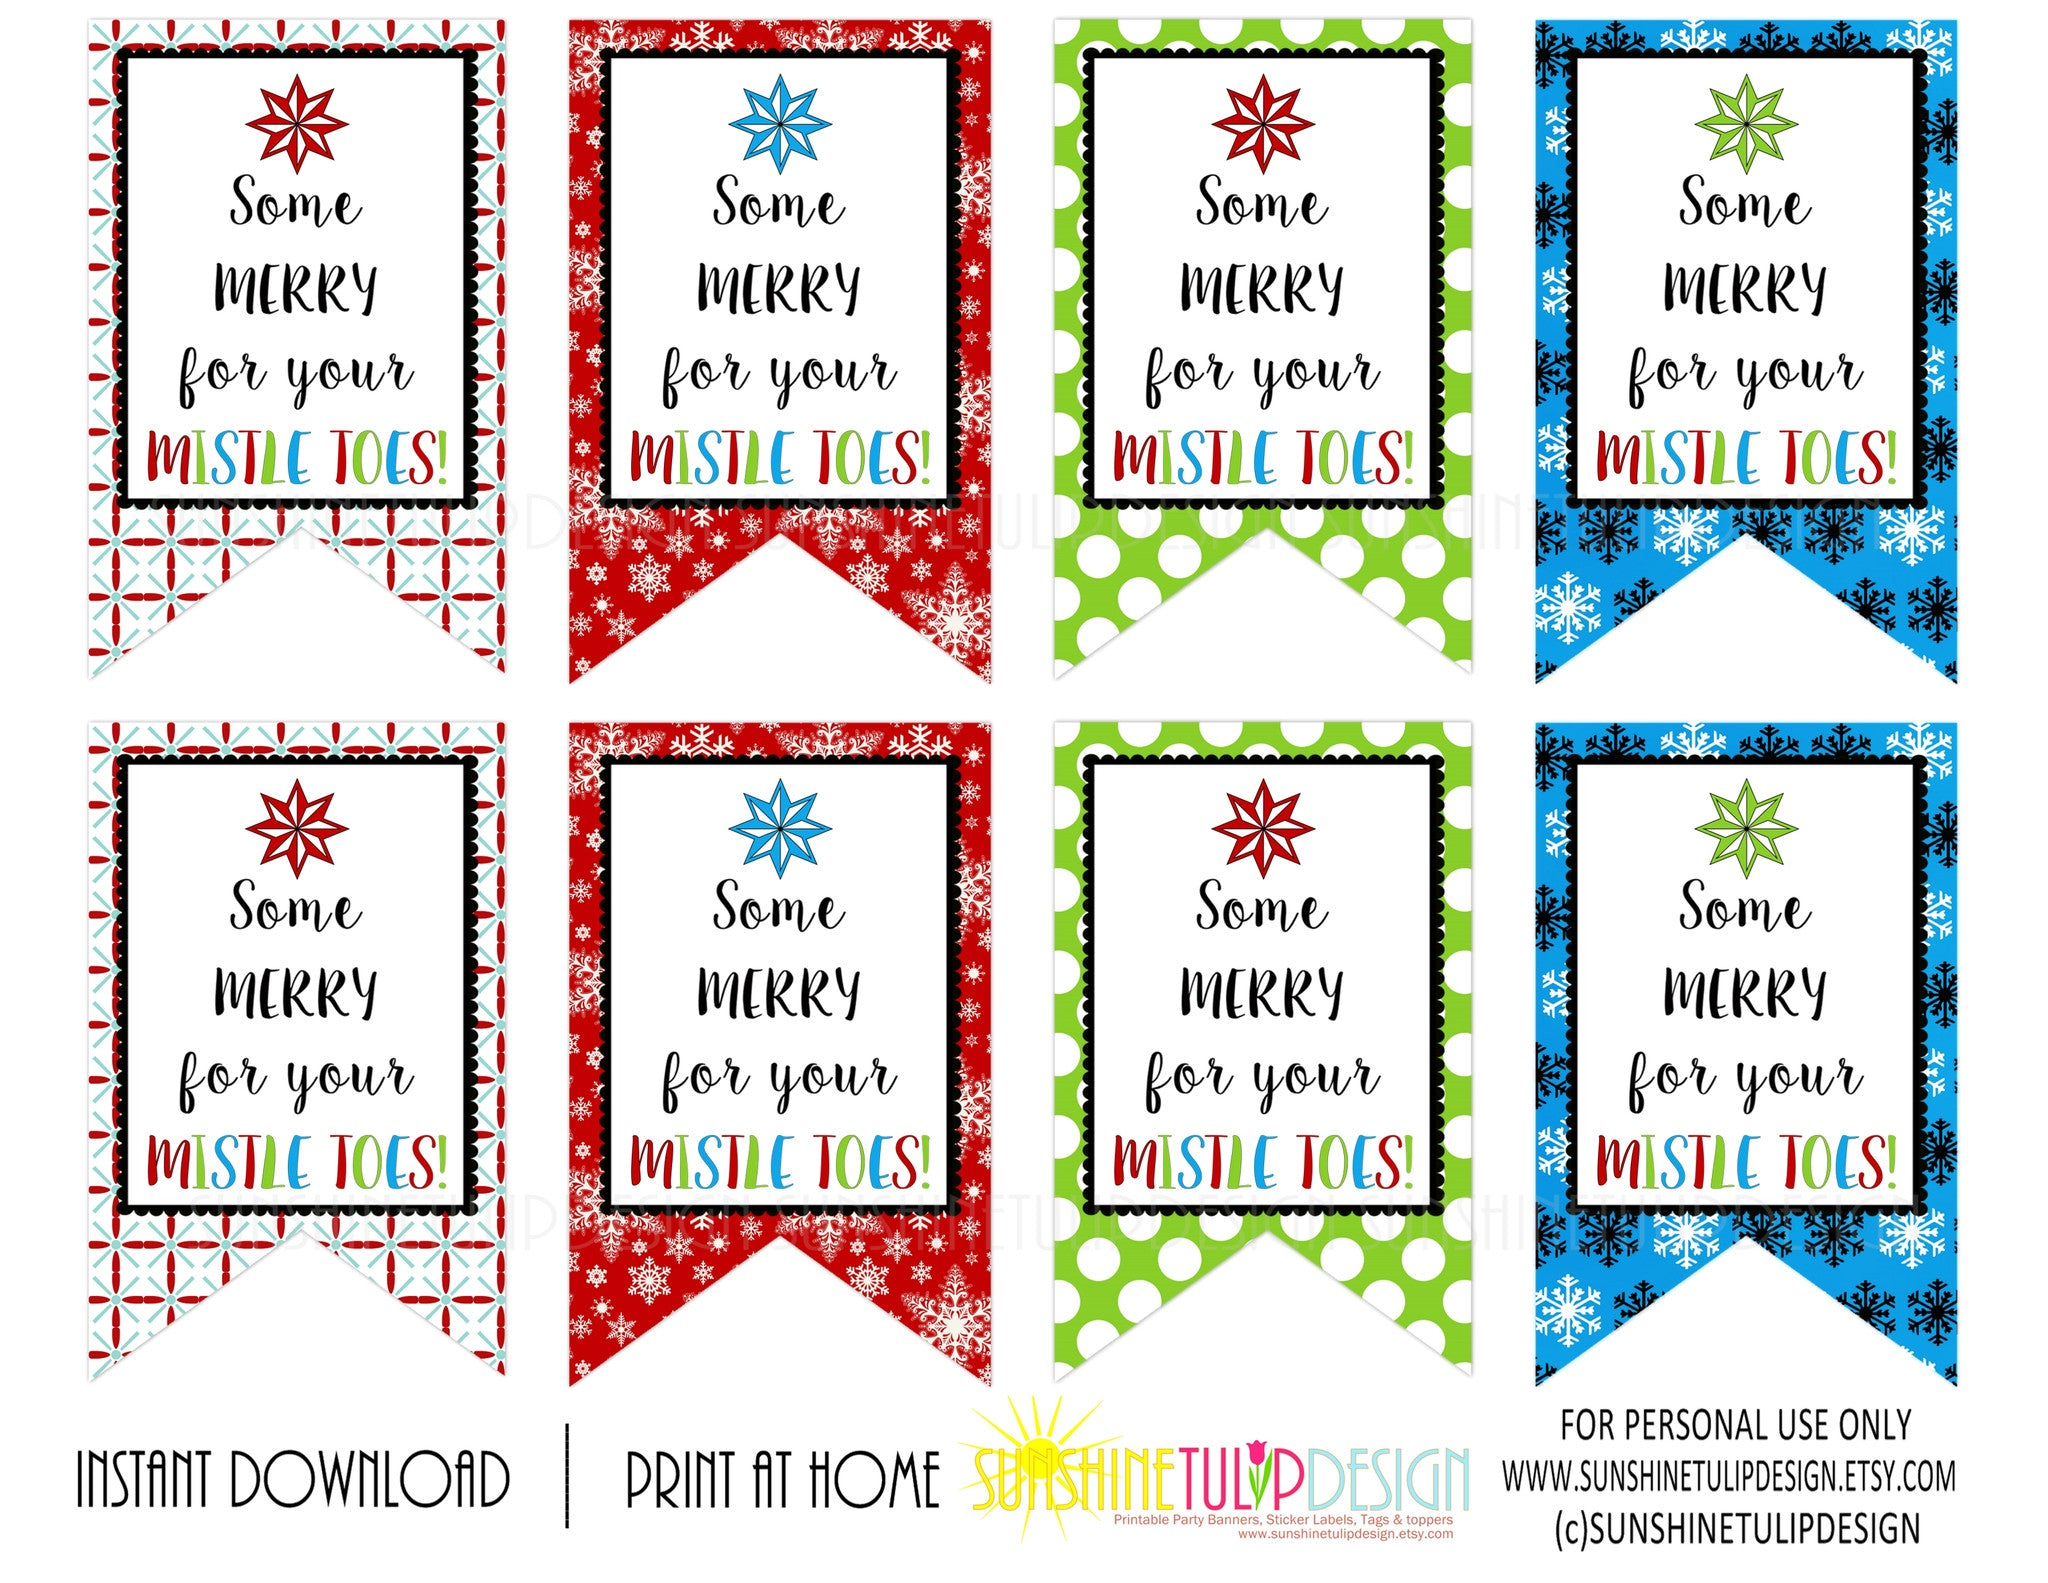 Printable teacher appreciation tags for your mistletoes gift tags printable teacher appreciation tags for your mistletoes gift tags nail polish gift tags negle Images